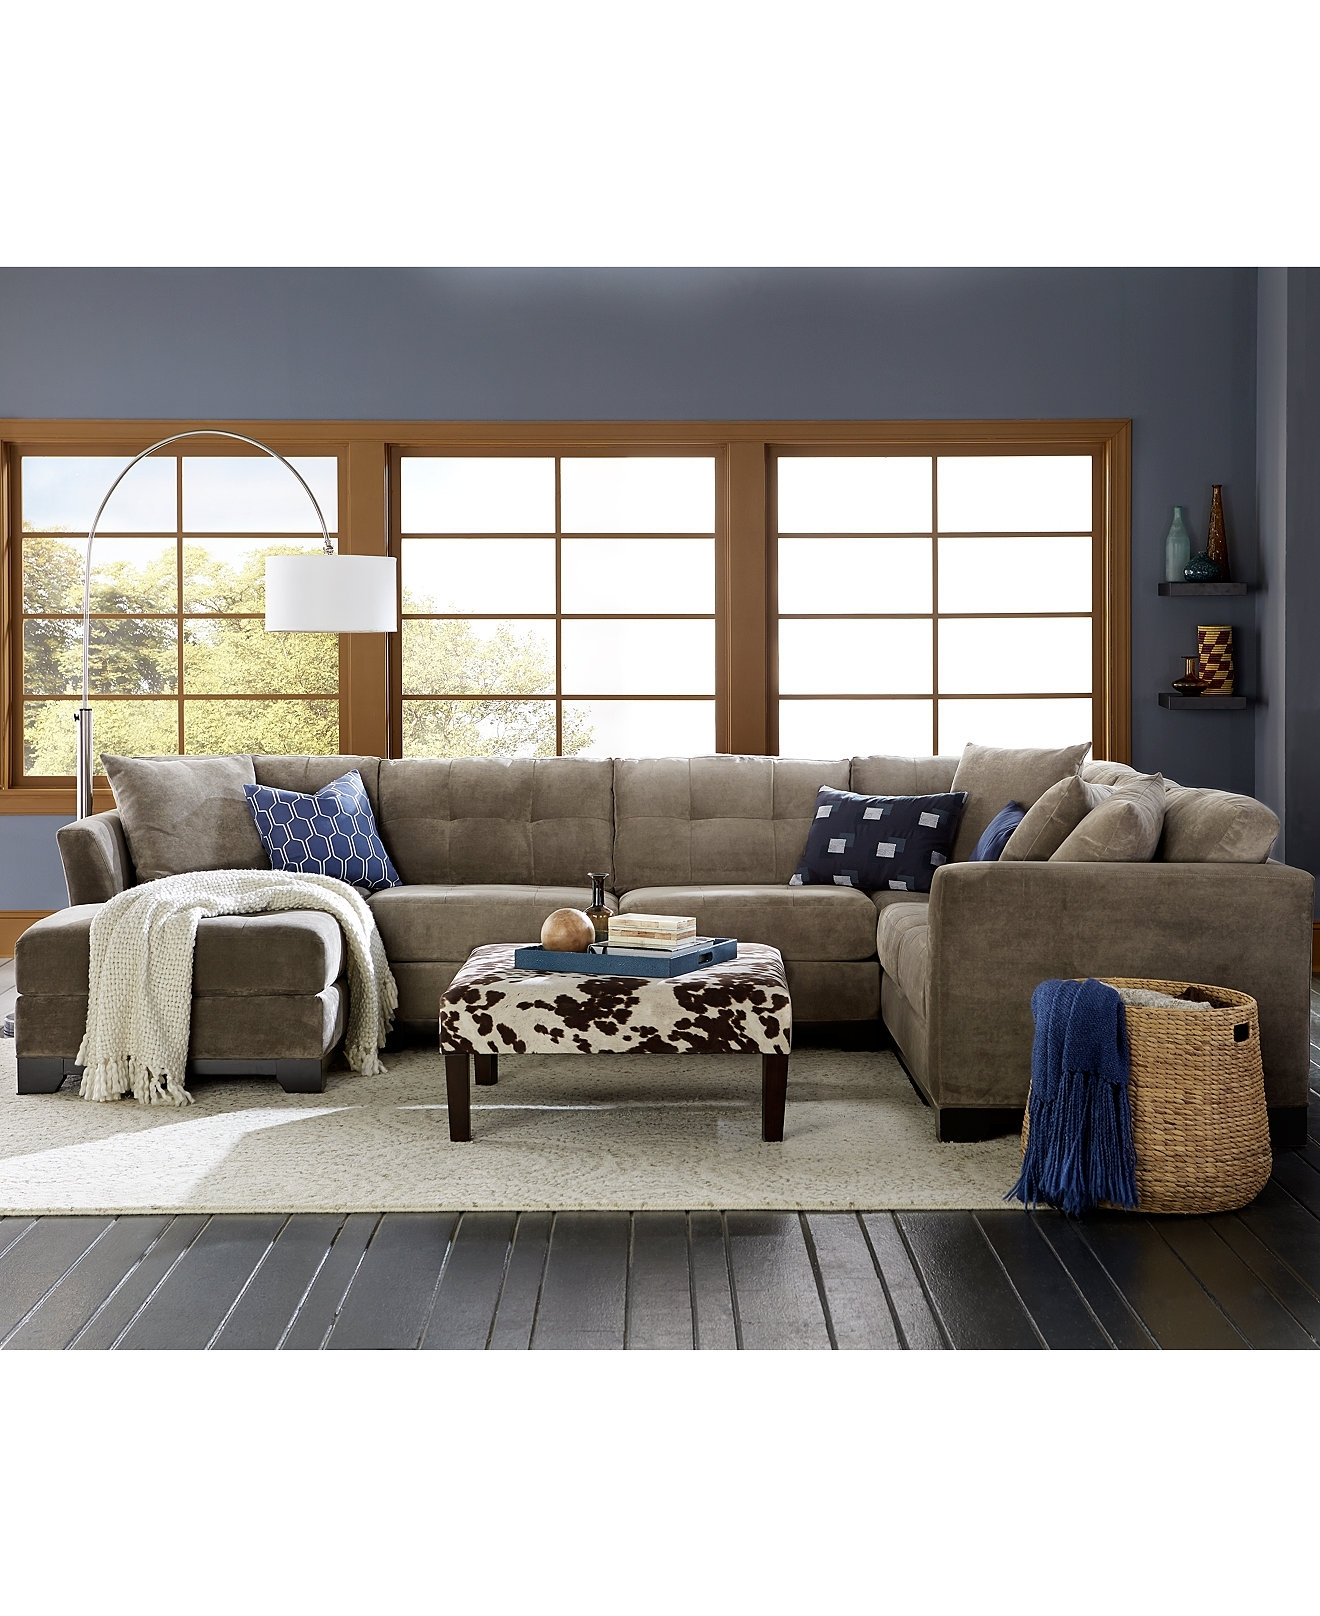 Macys Sectional Sofas With Latest Sofas: Elegant Living Room Sofas Designmacys Sectional Sofa (View 10 of 15)